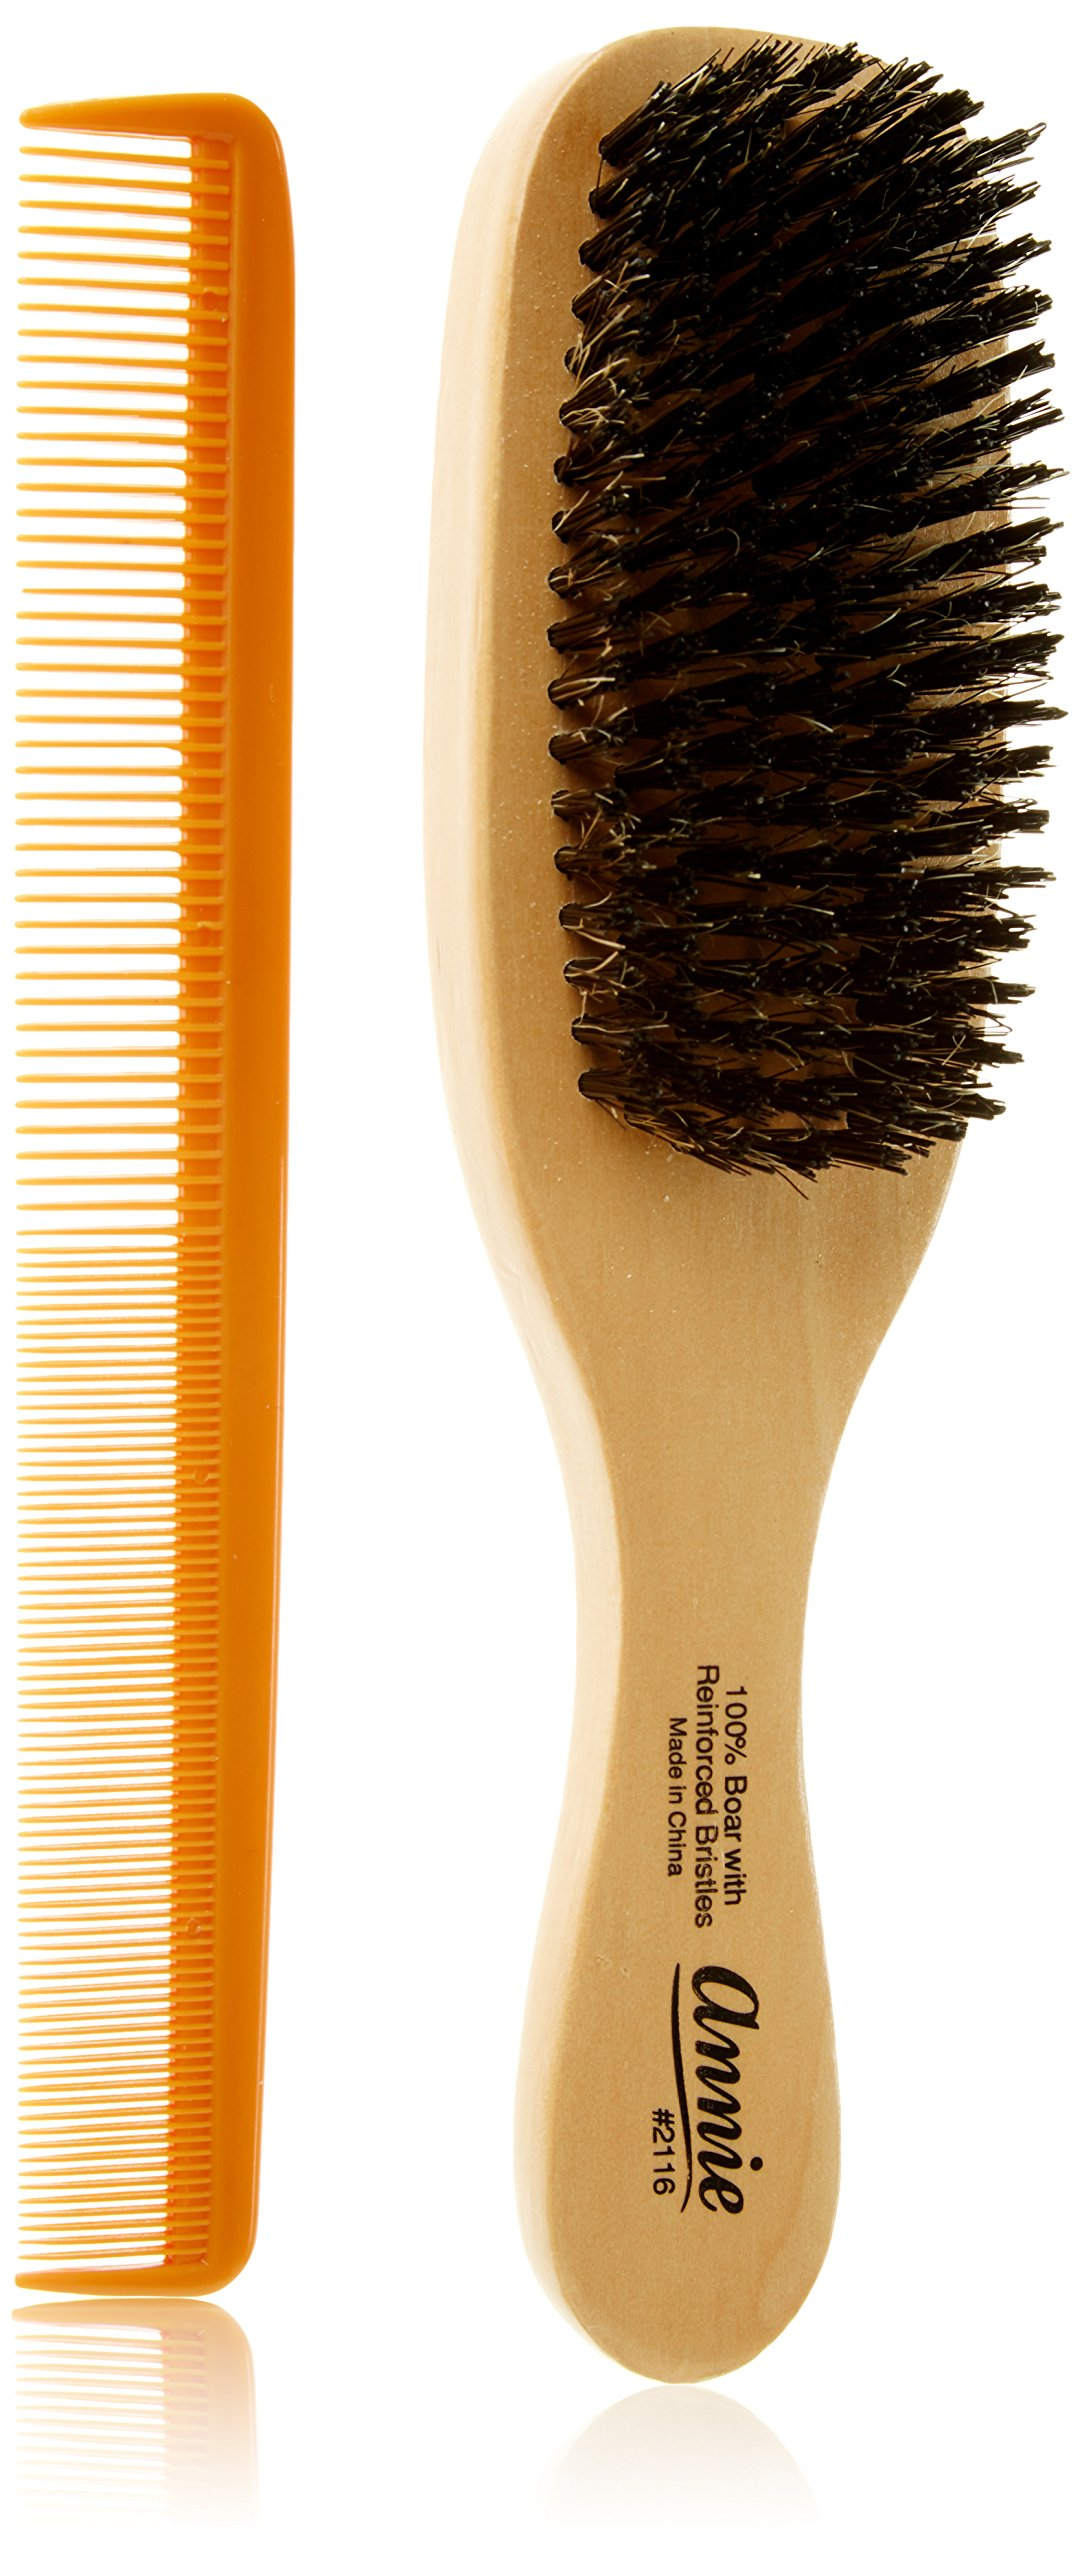 Wave Hair Brush HARD Boar Bristle with Styling Comb by Annie